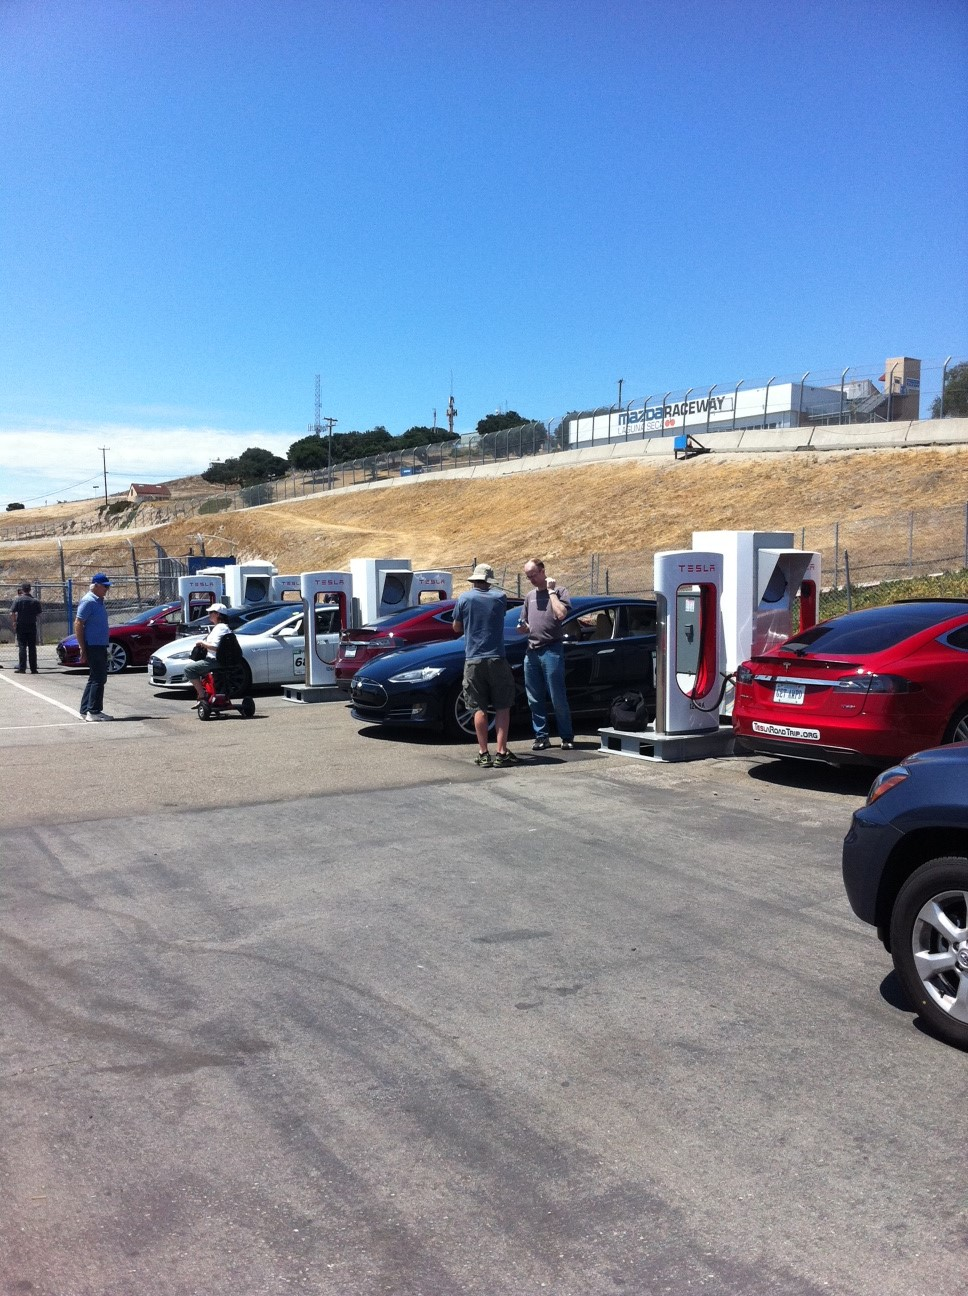 The event included over 35 Teslas which charged via the on-site Tesla Superchargers.